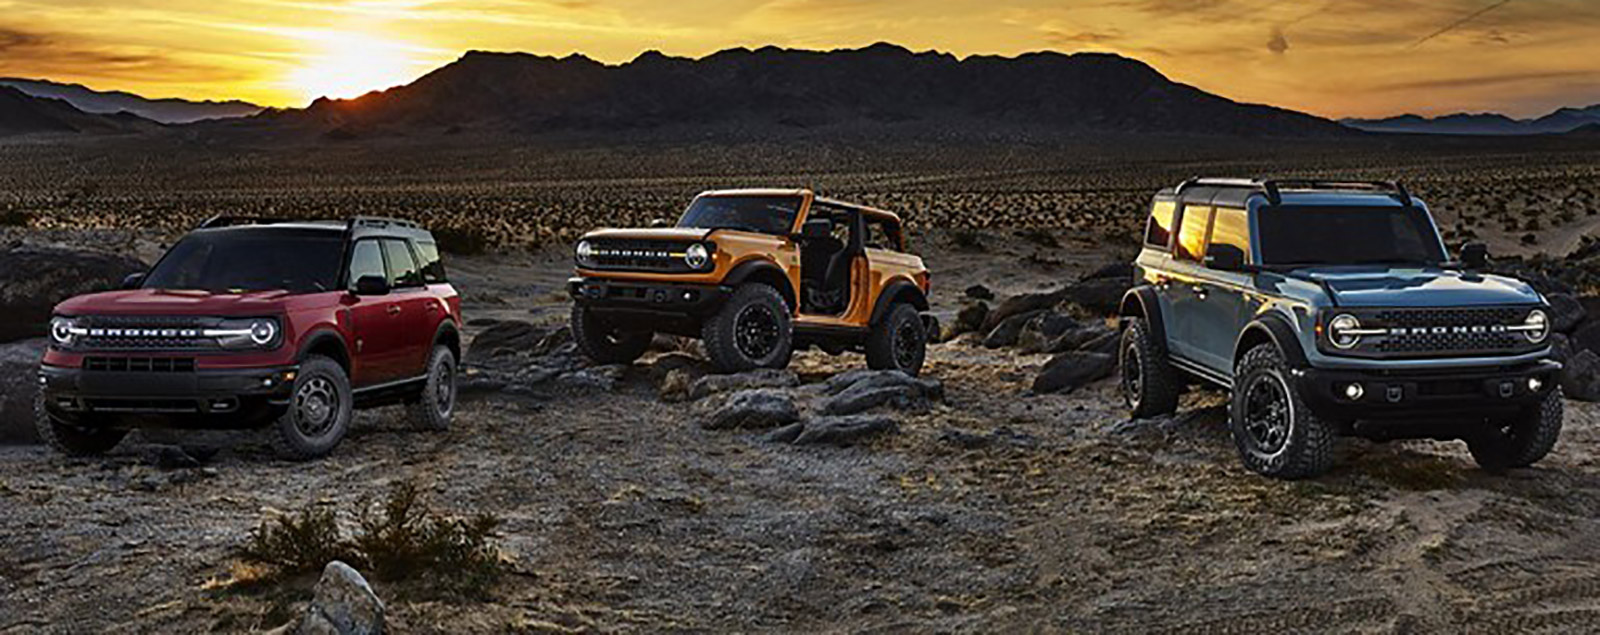 2021 Bronco Sport Trim Profiles: Badlands & First Edition